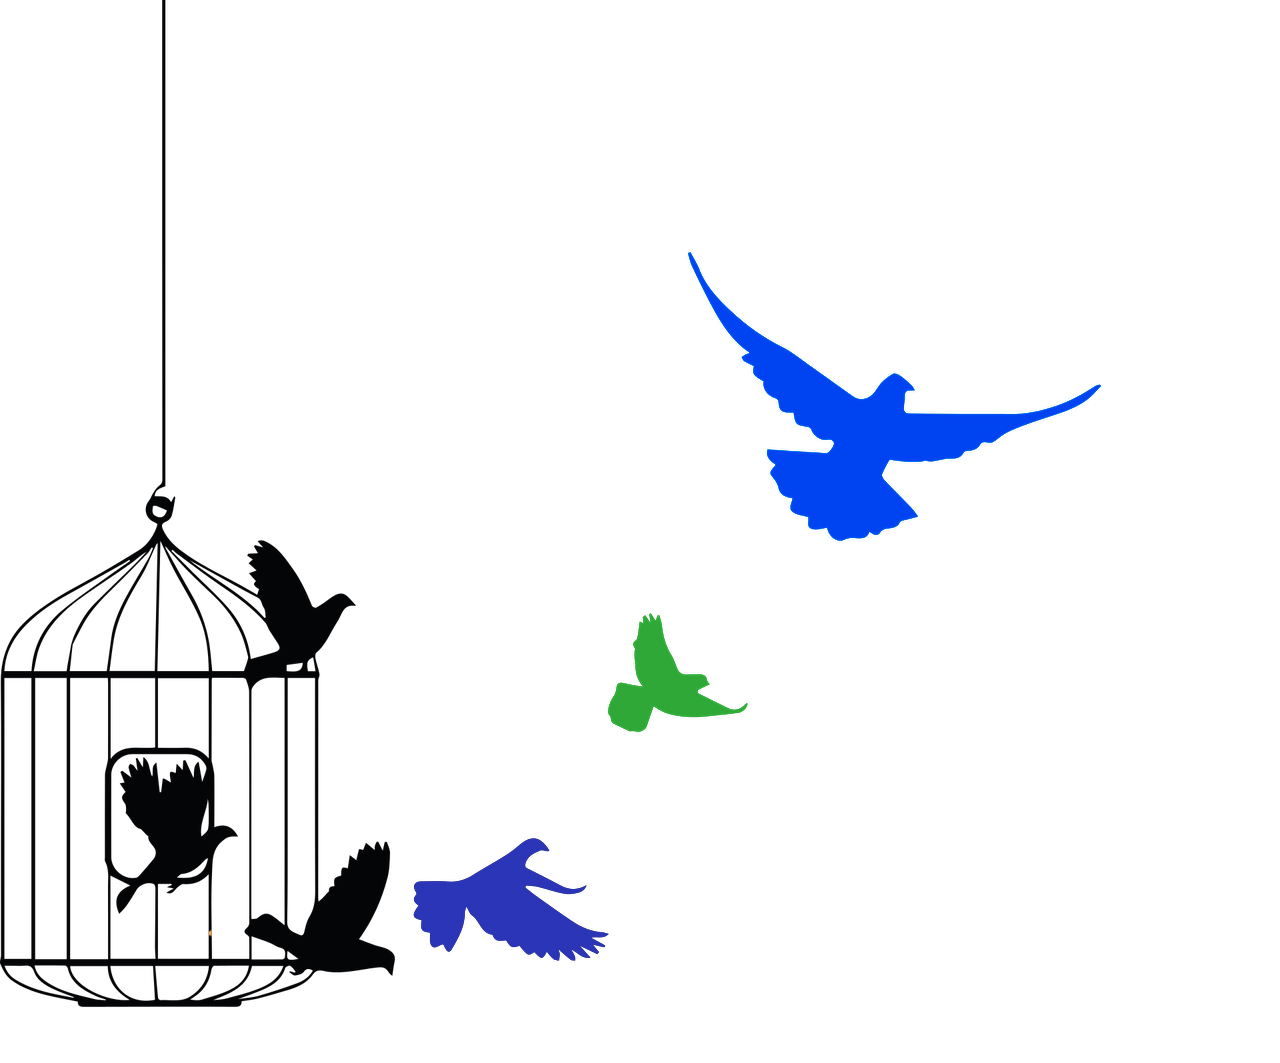 Freedom-Birds_leaving_cage.jpg